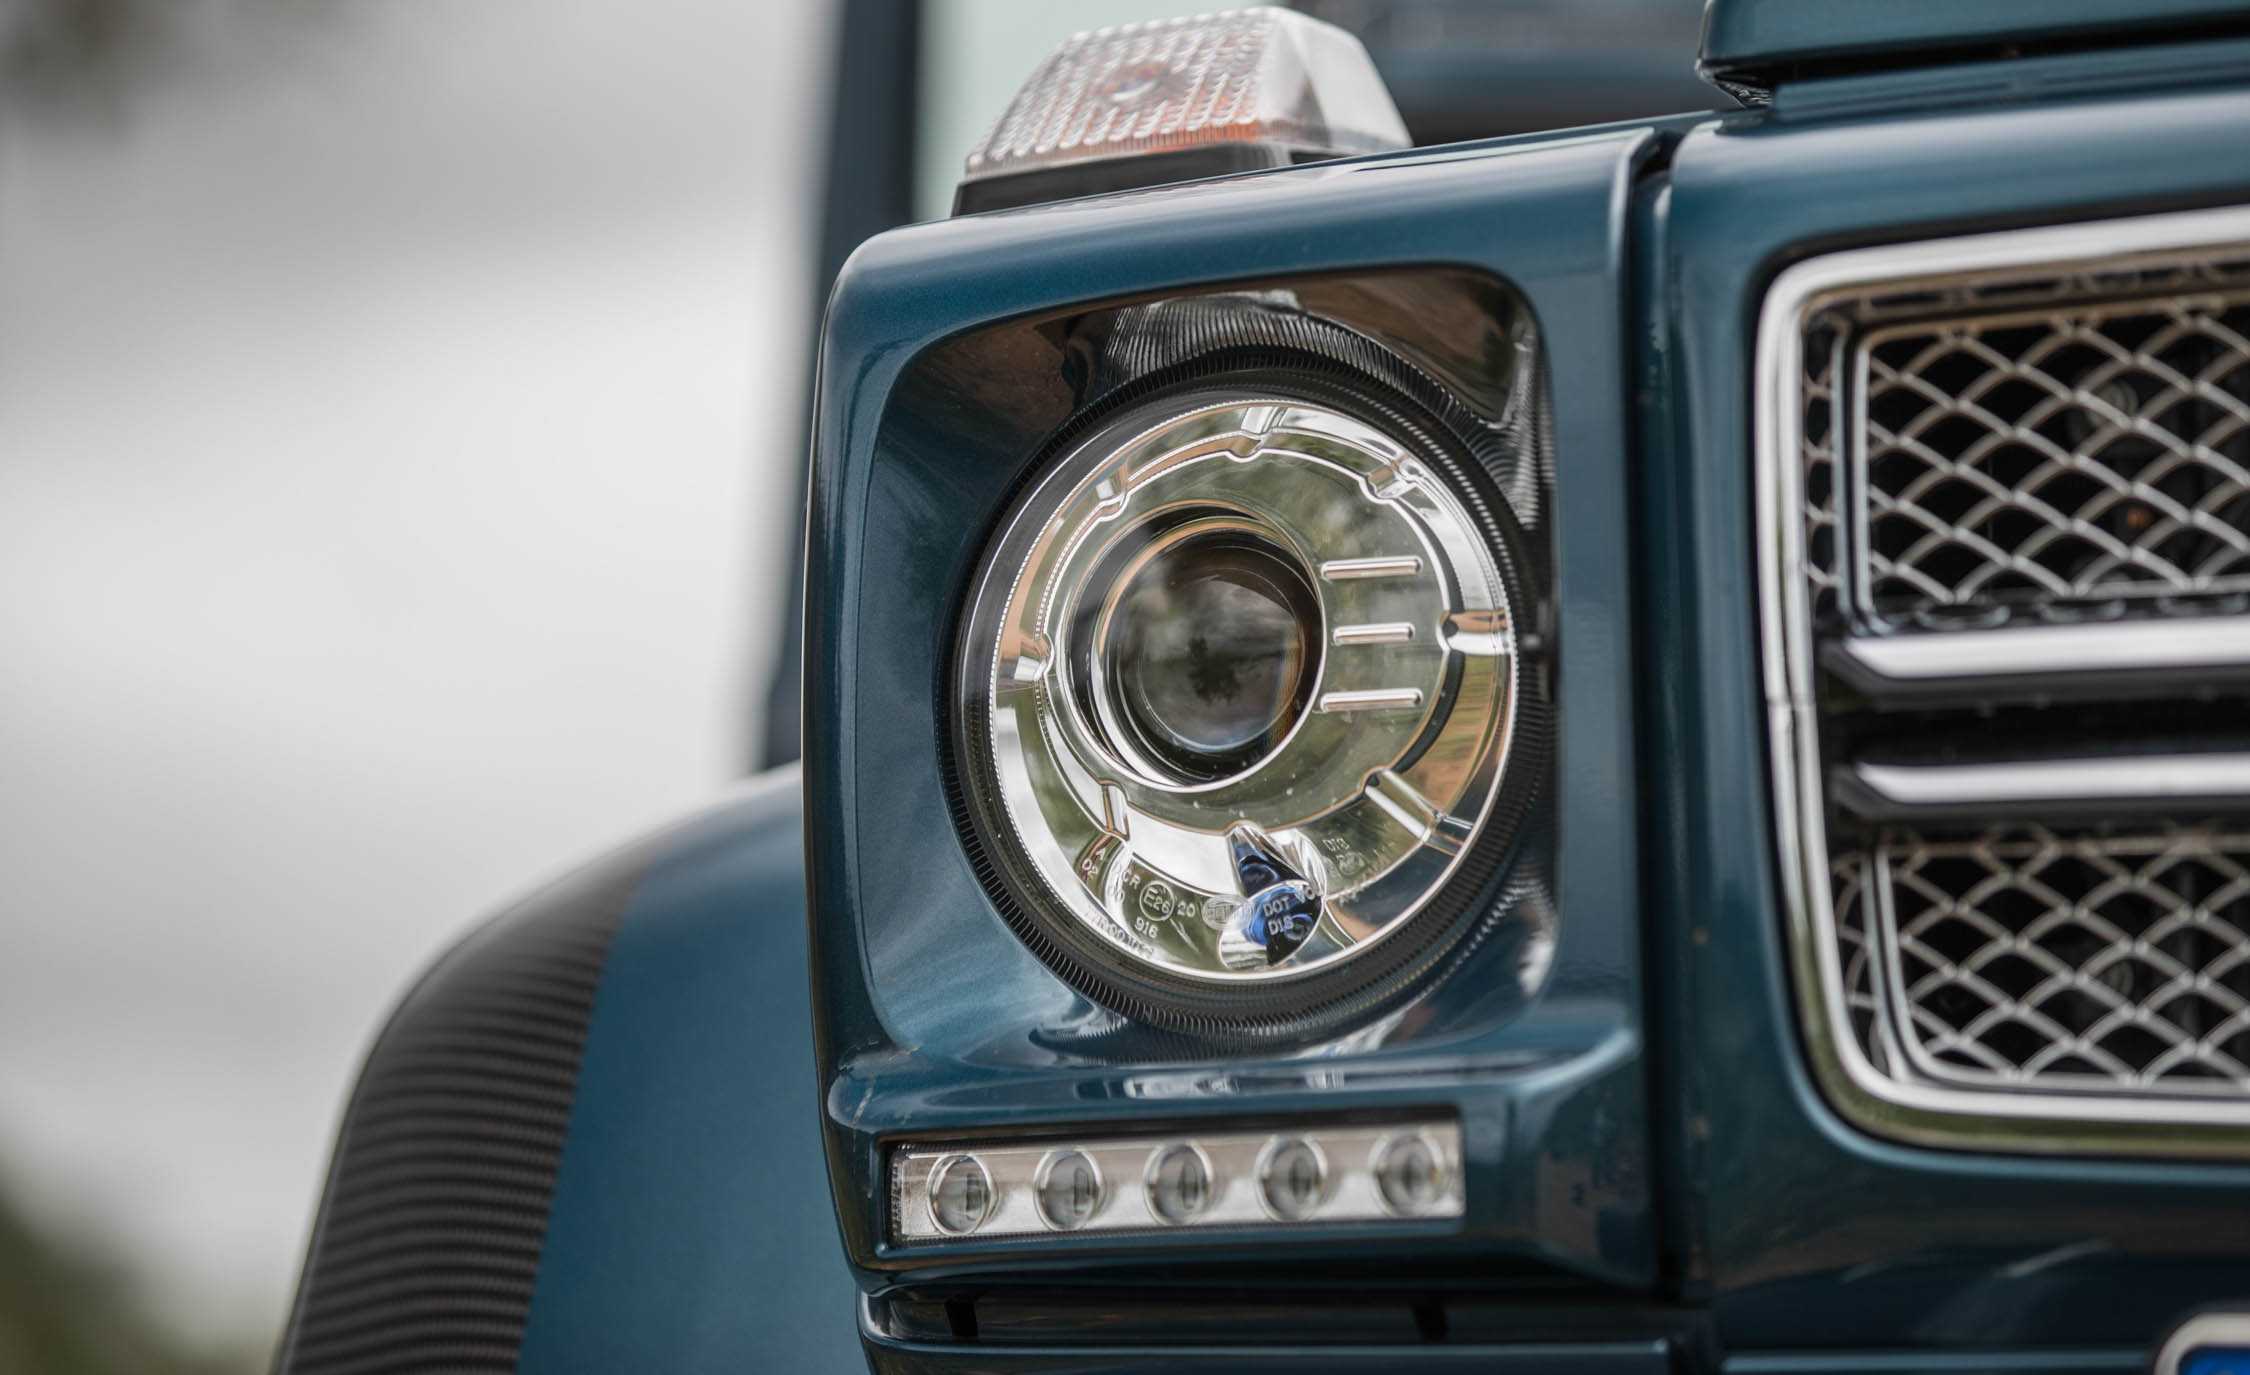 2018 Mercedes Maybach G650 Landaulet Exterior View Headlight (View 40 of 52)